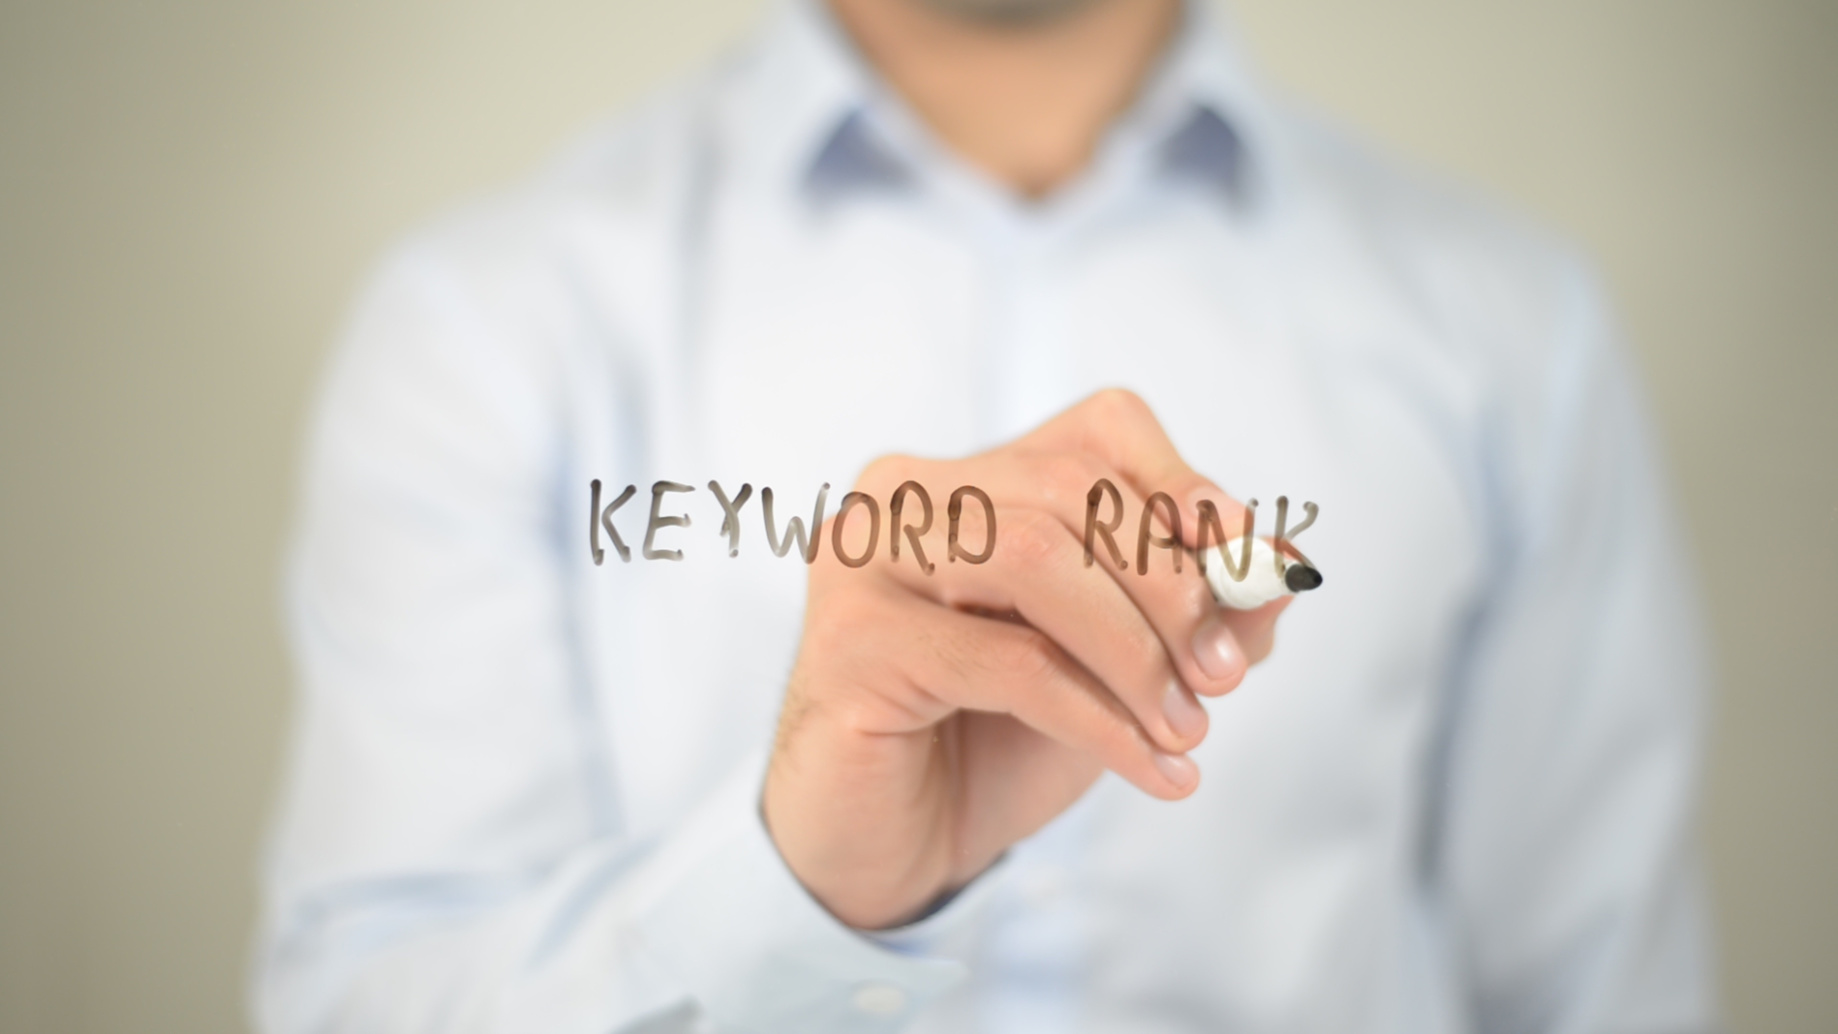 Keyword Rank on transparent screen and if you need quality SEO contact us in Crown Point today.